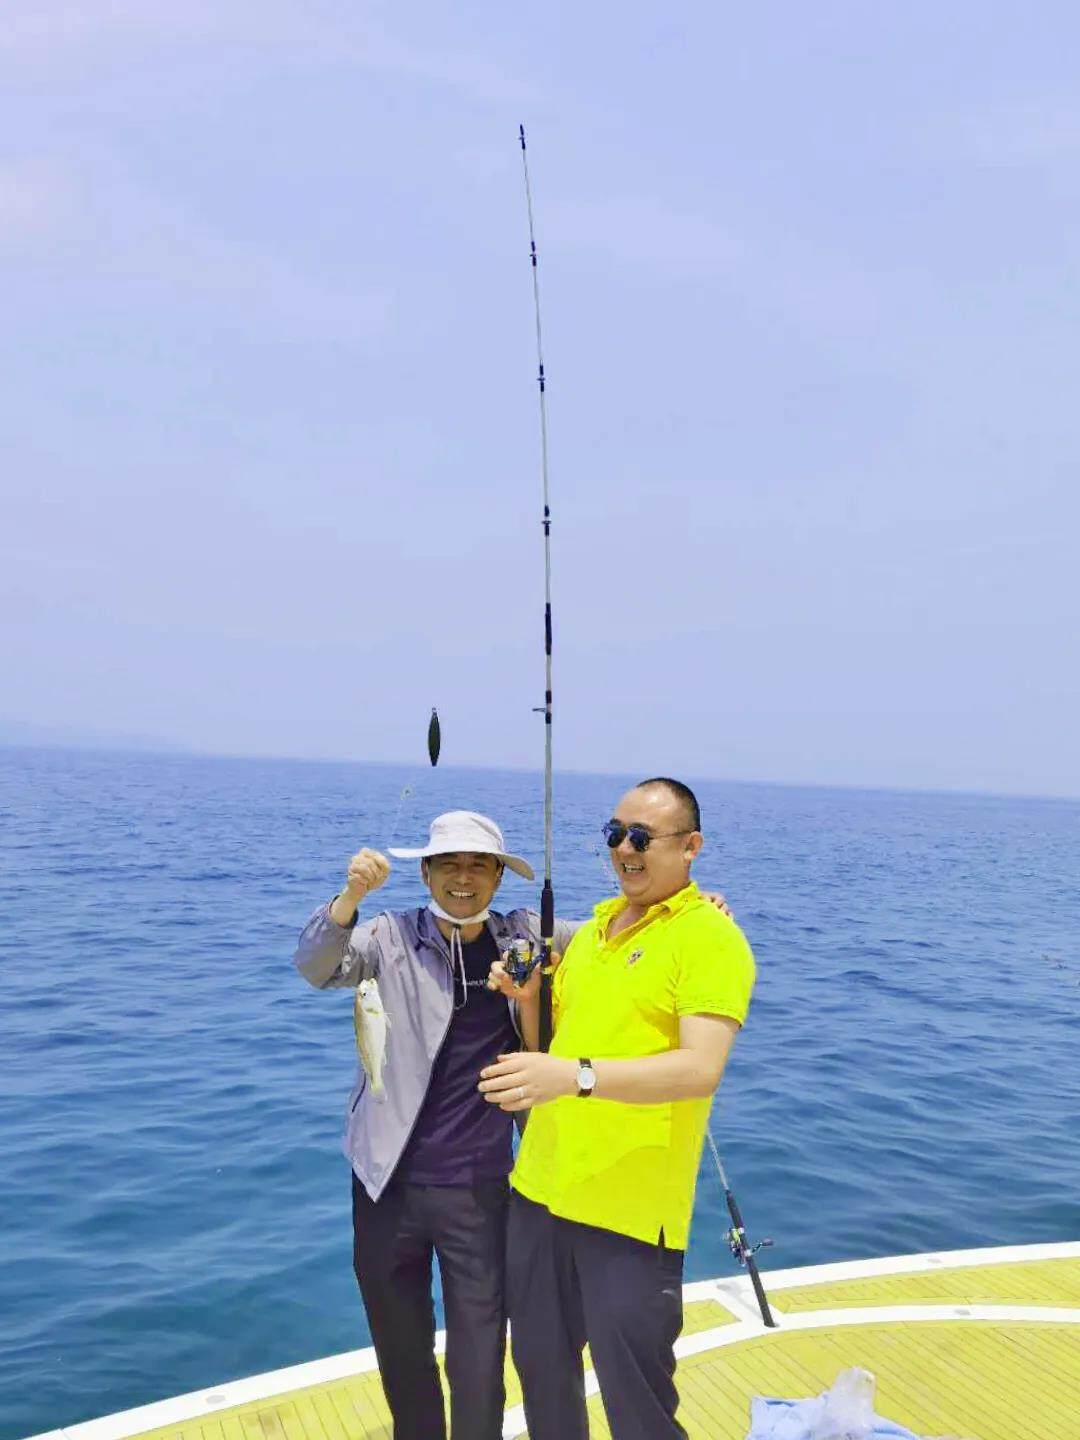 Yankang-Group: The-First-Executive-Team-Building-Activity-in-2020-Sea-fishing